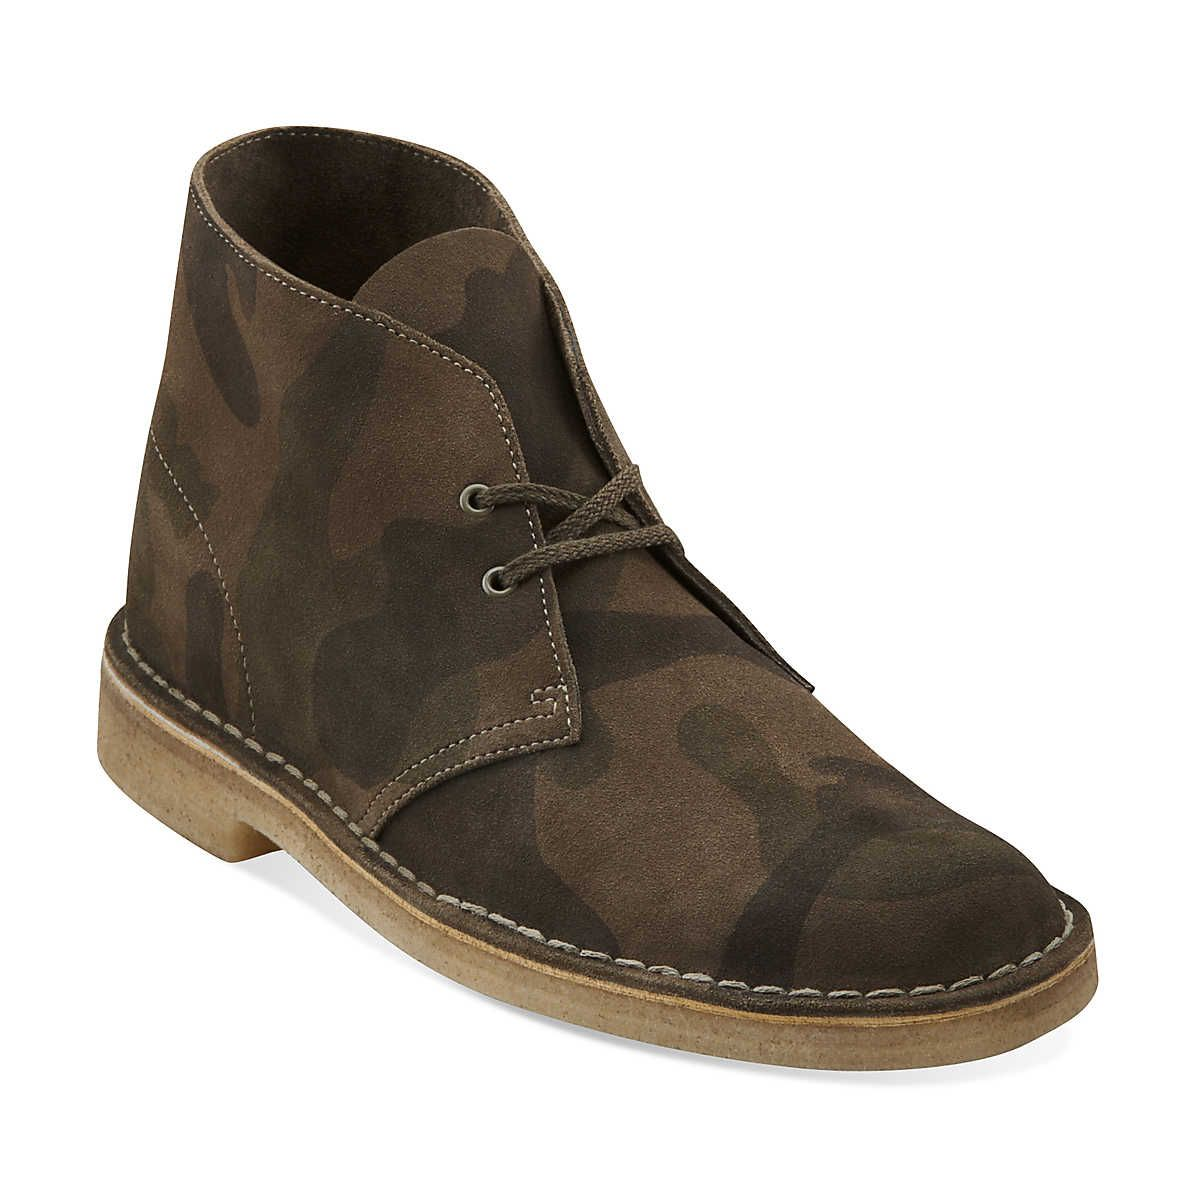 and these! Desert Boot-Men in Camoflage Green Suede - Mens Boots ...